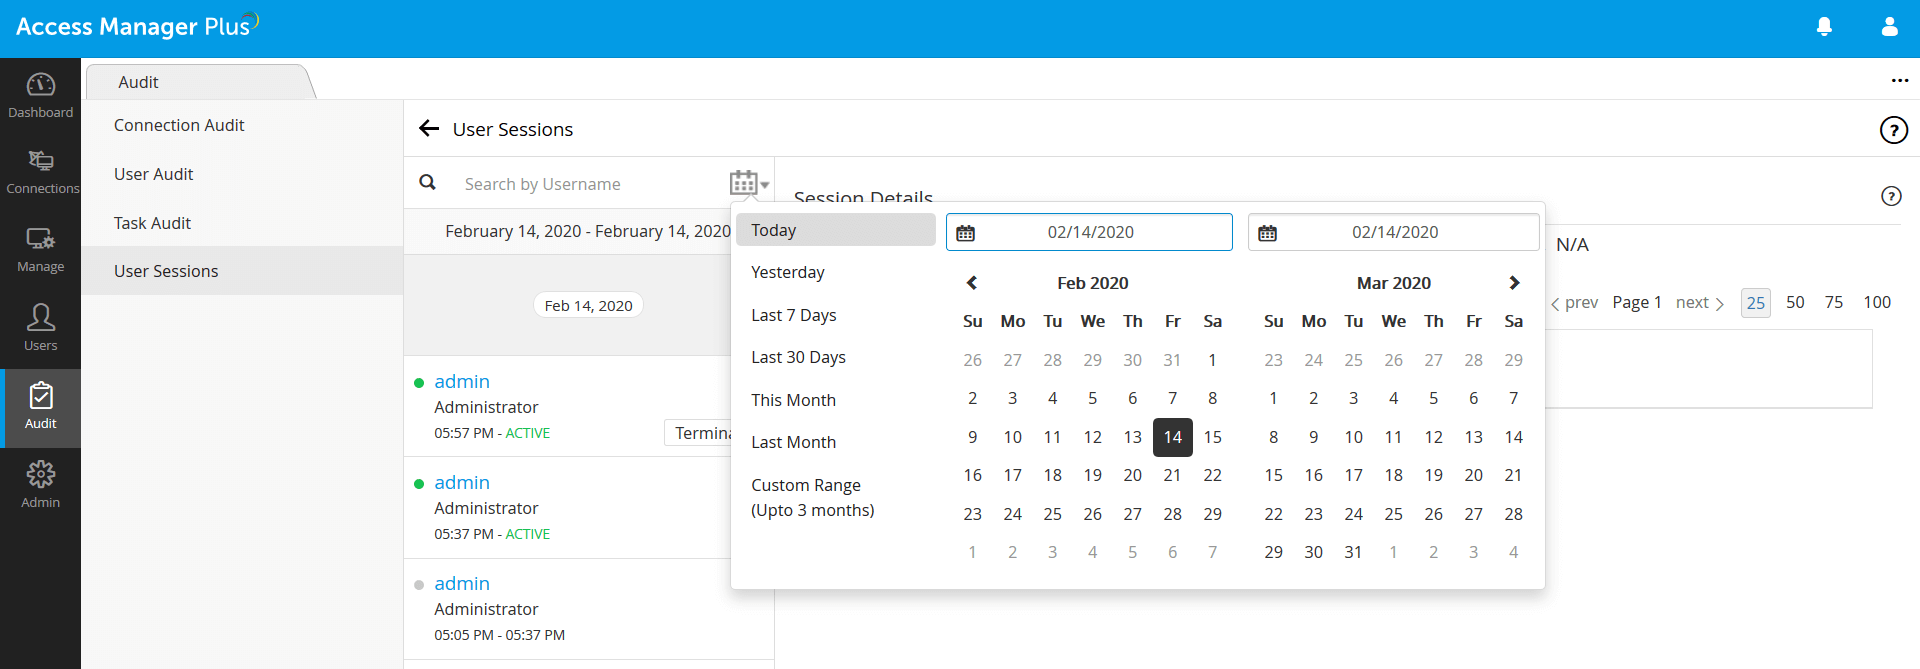 tracking privileged session Access Manager Plus